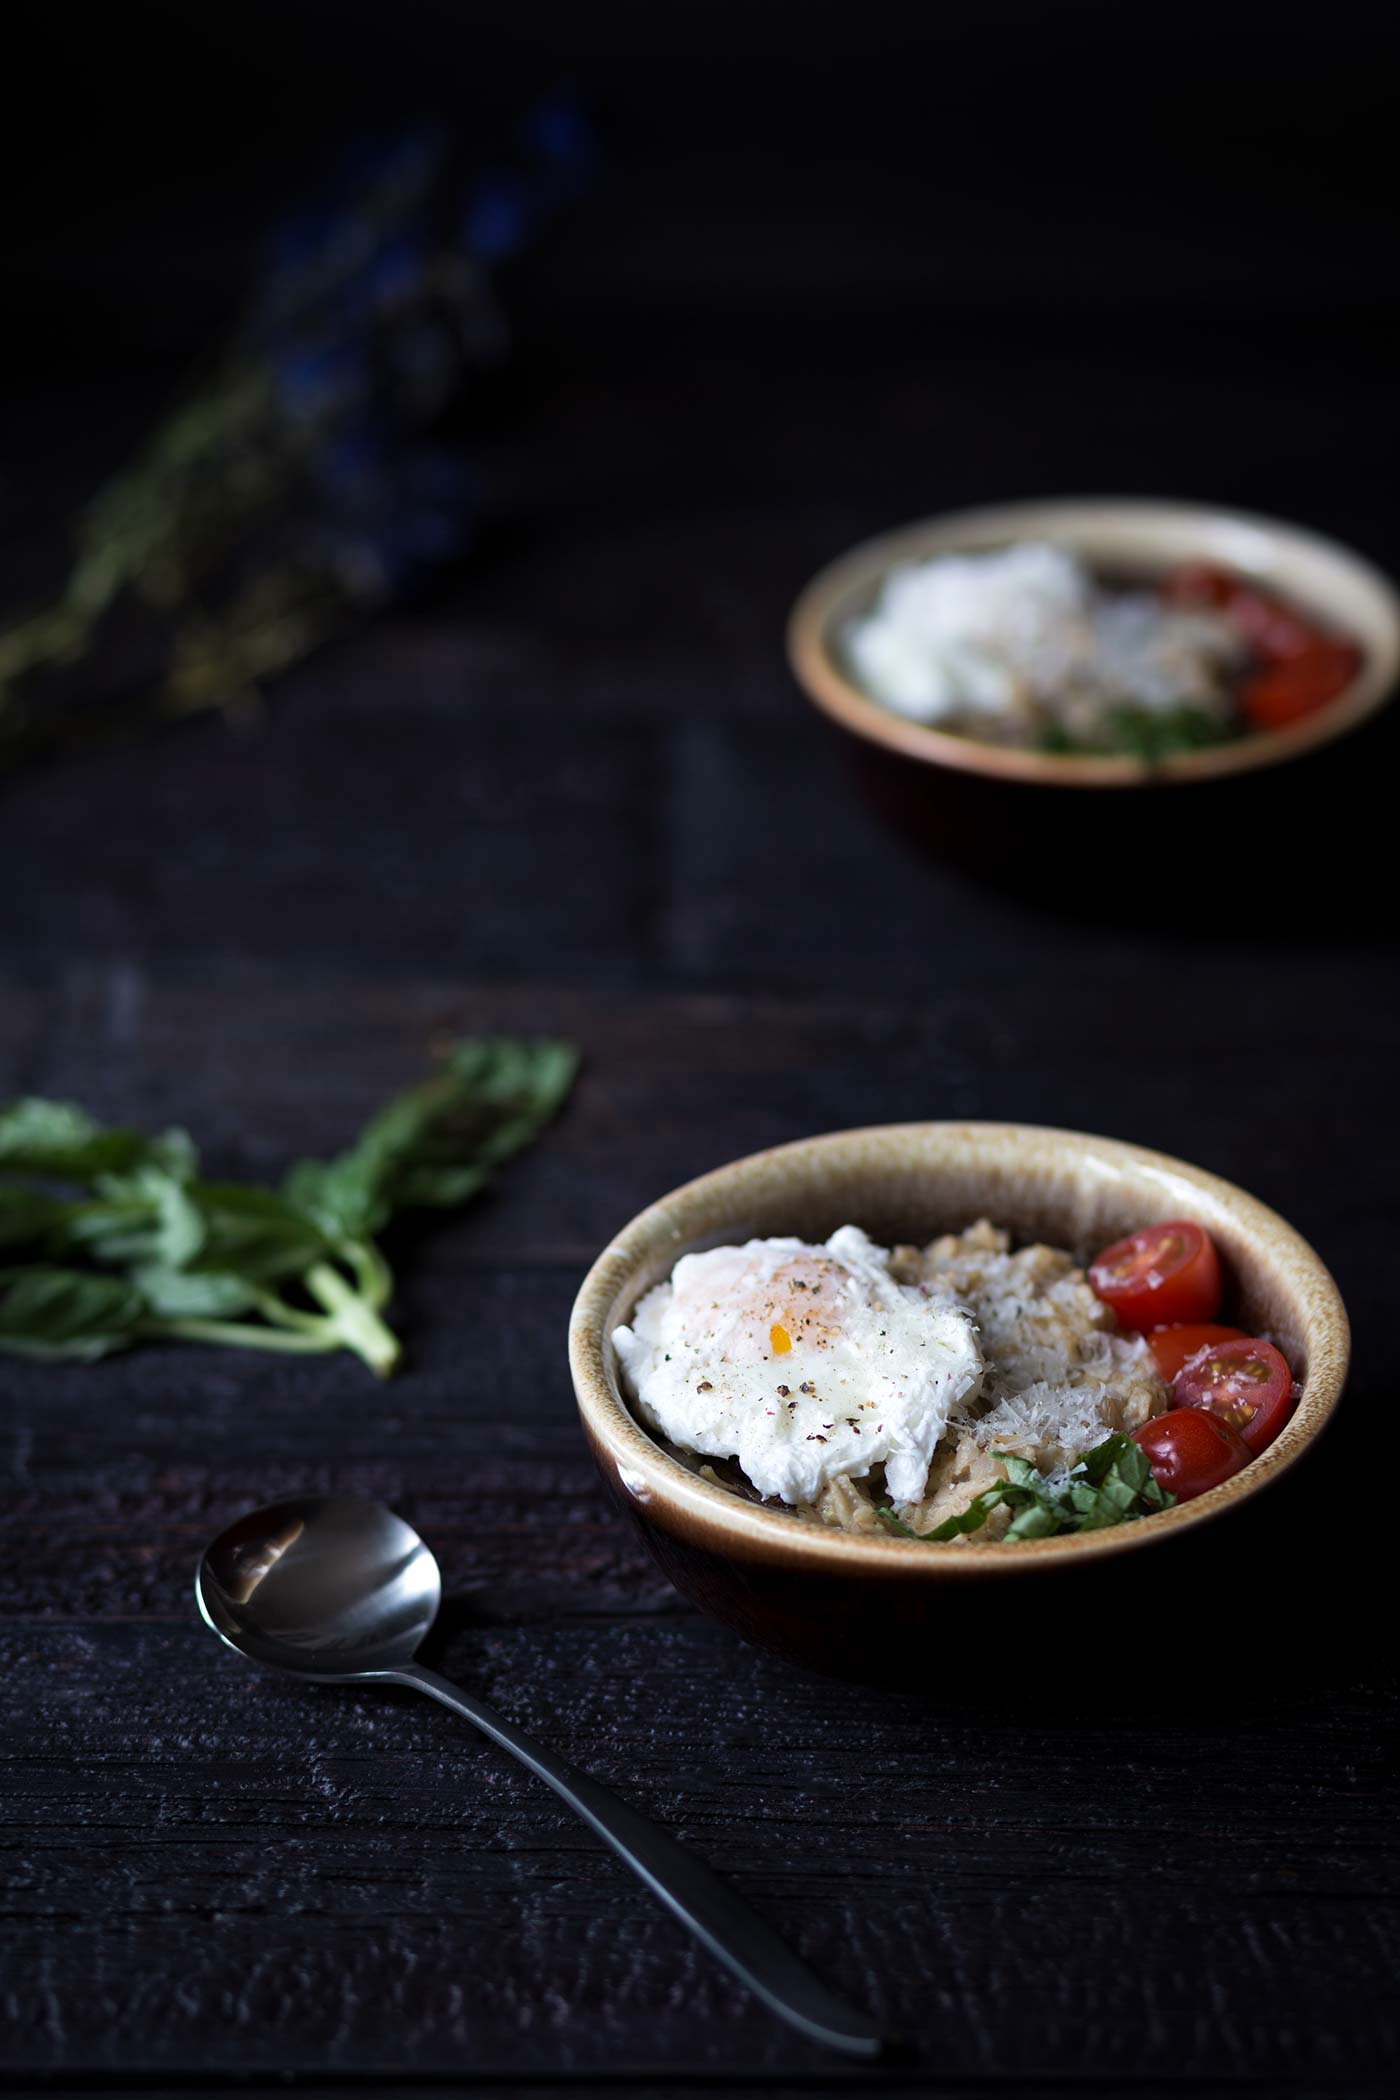 bowls of savory oatmeal with egg and tomatoes on a dark background